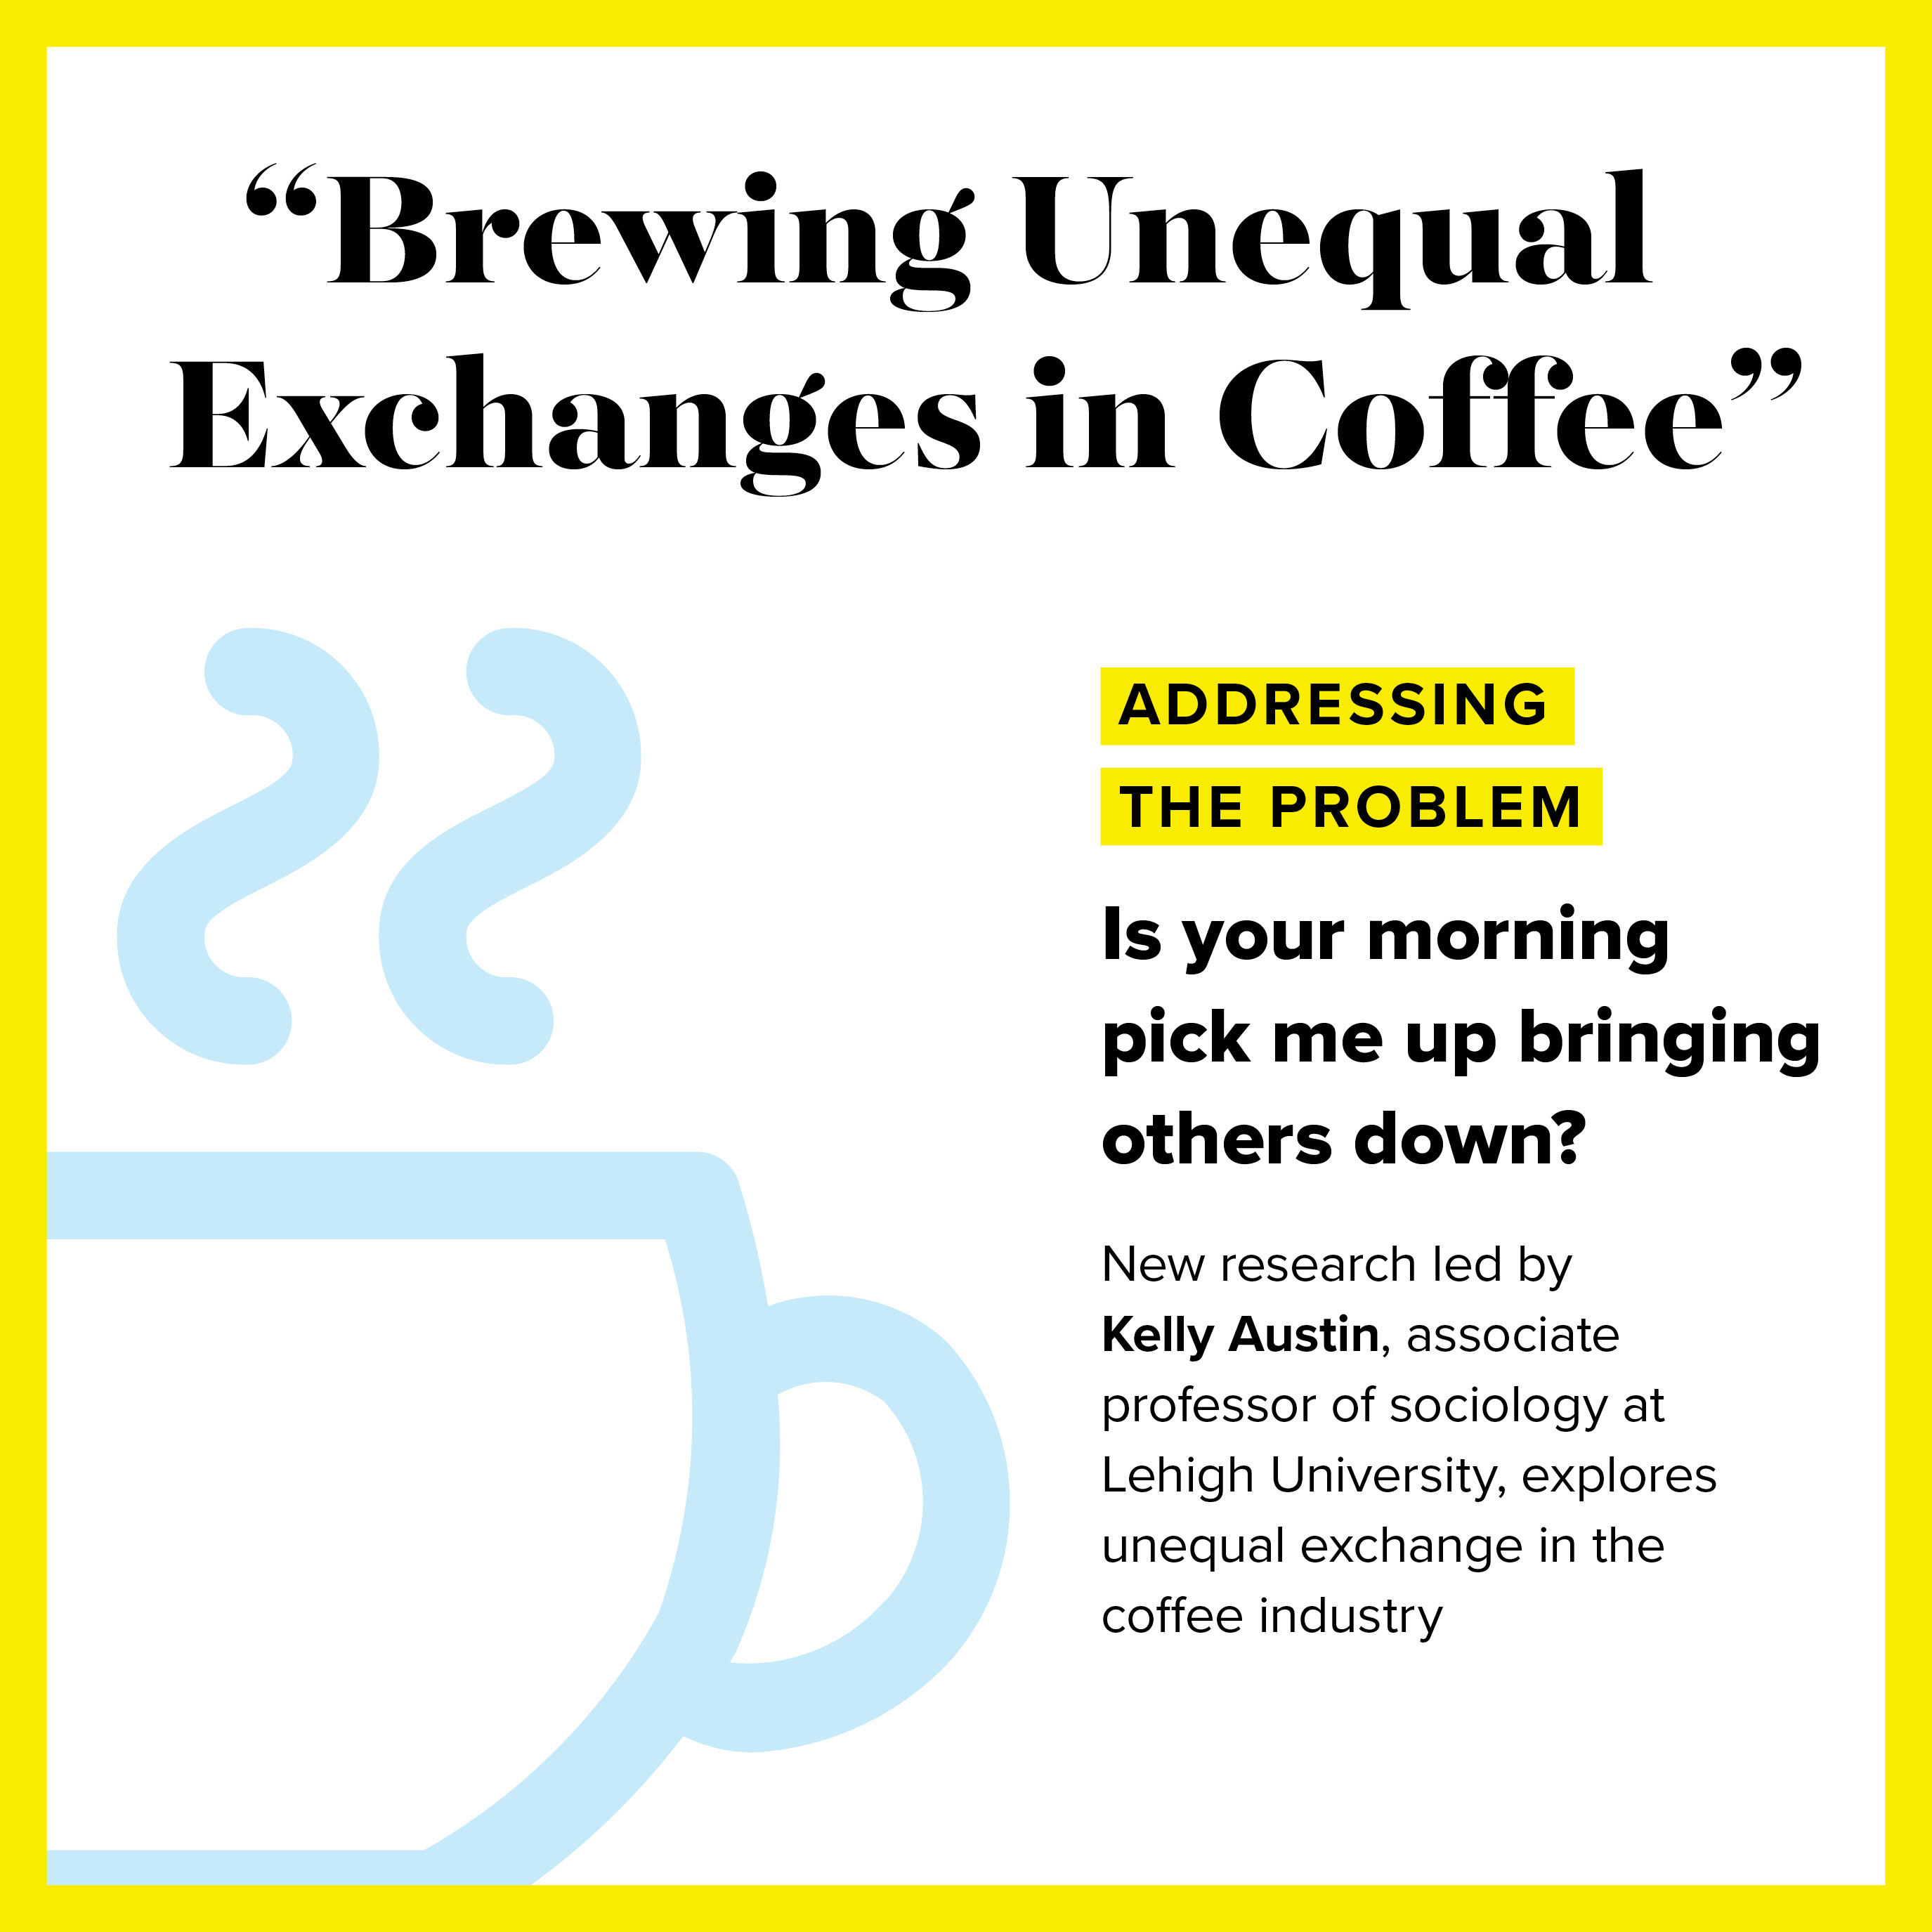 New research led by Kelly Austin, associate professor of sociology at Lehigh University, explores unequal exchange in the coffee industry